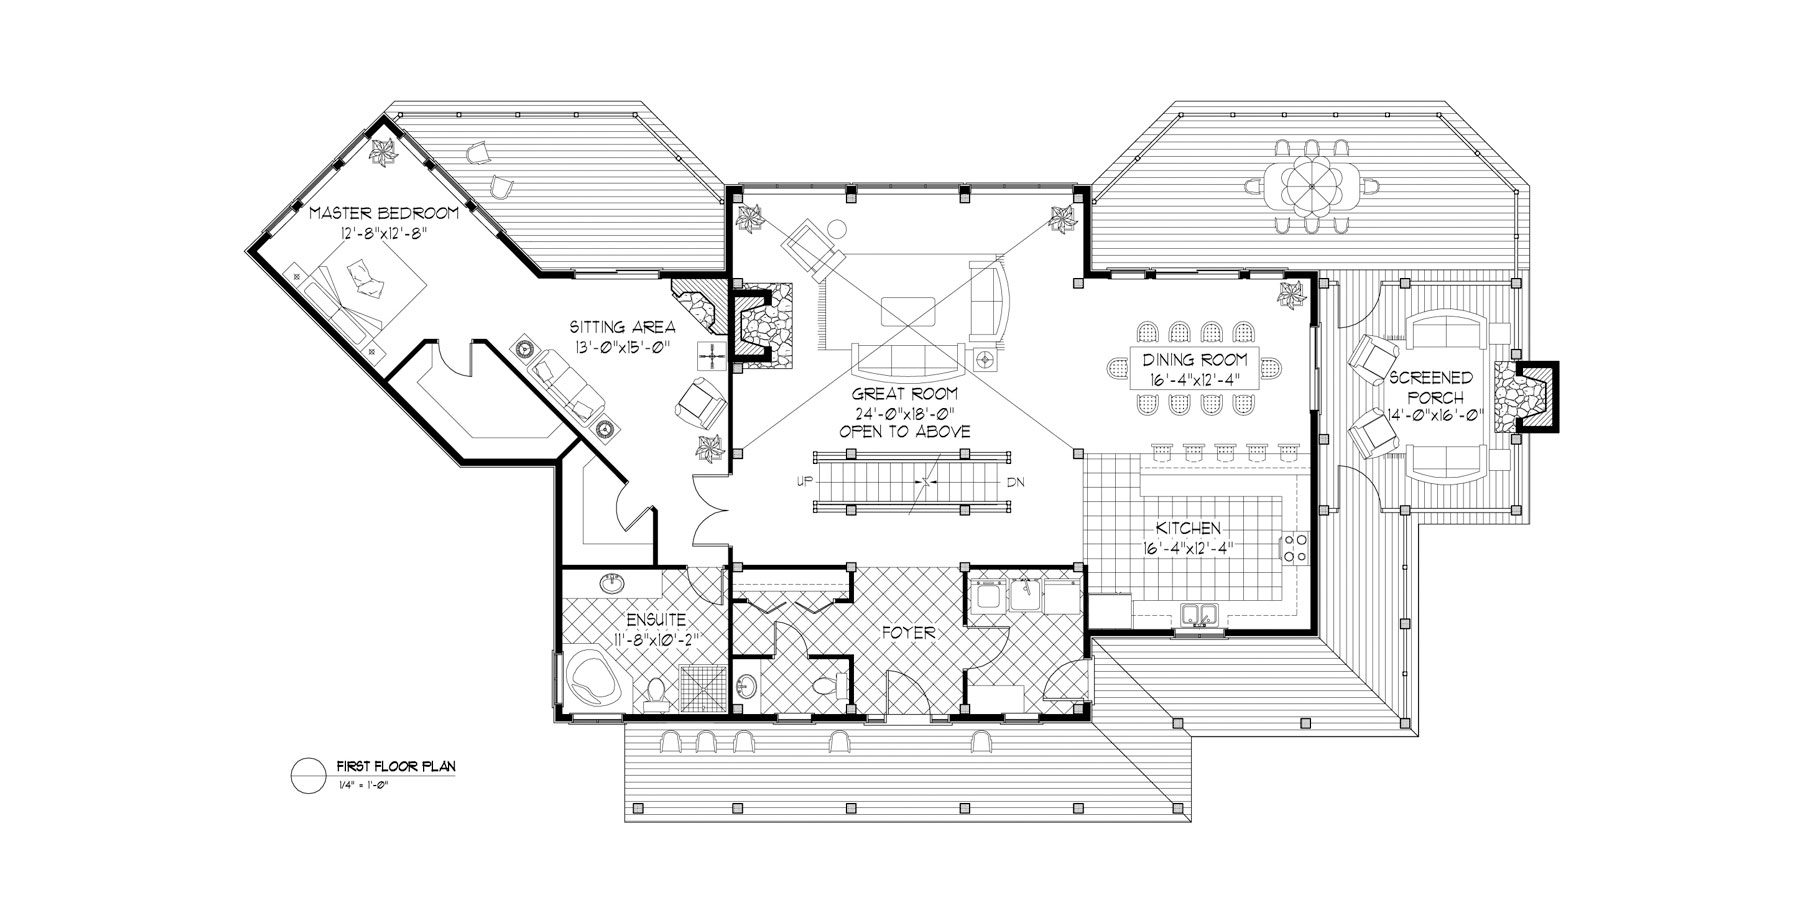 Normerica Timber Frames, House Plan, The Fremont 3582, First Floor Layout